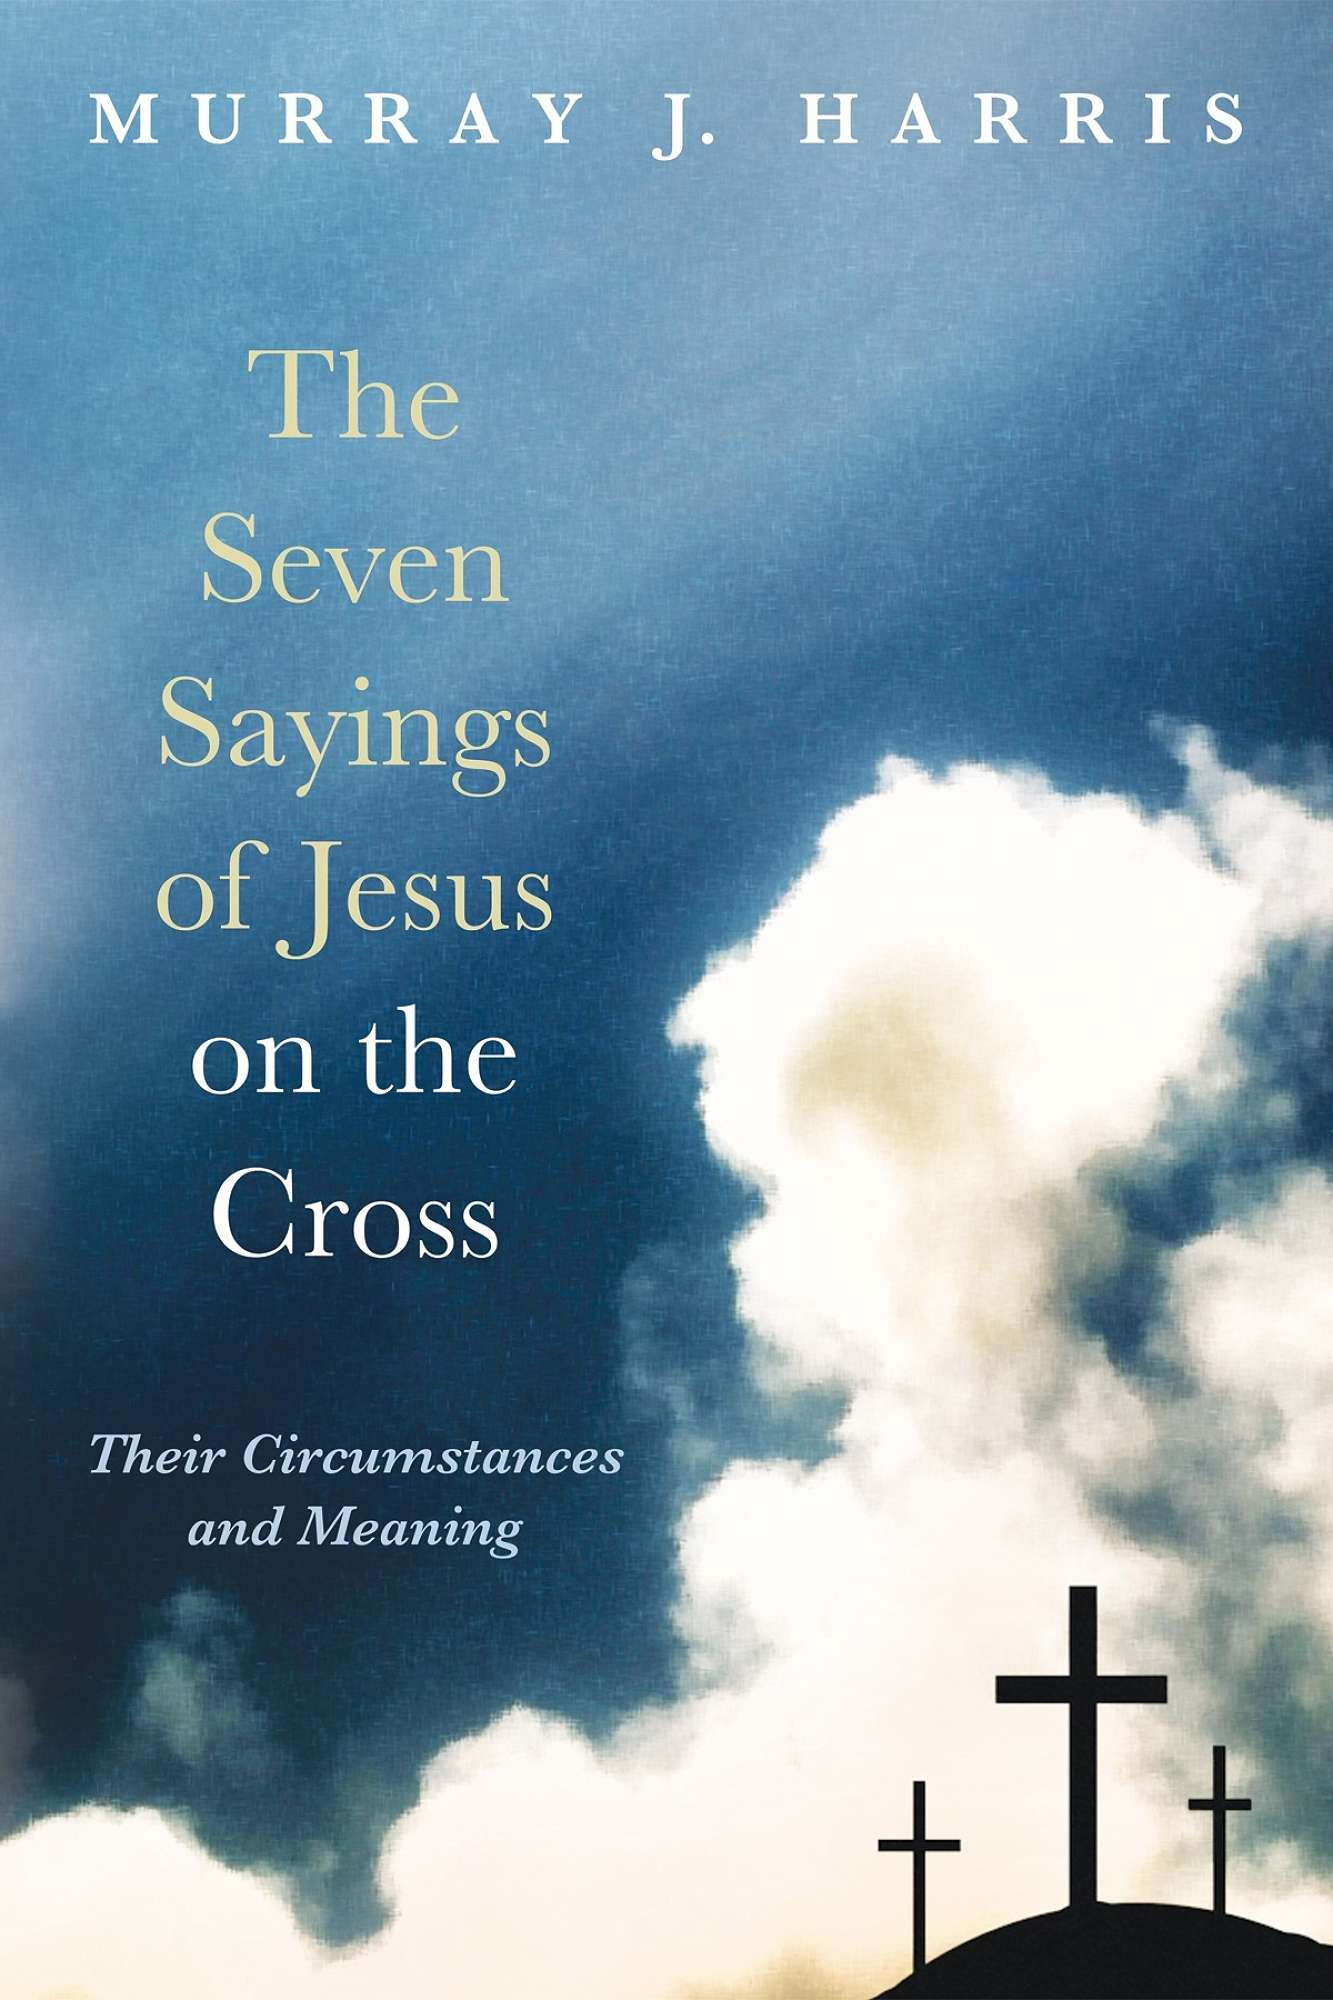 Book Review: The Seven Sayings of Jesus from the Cross